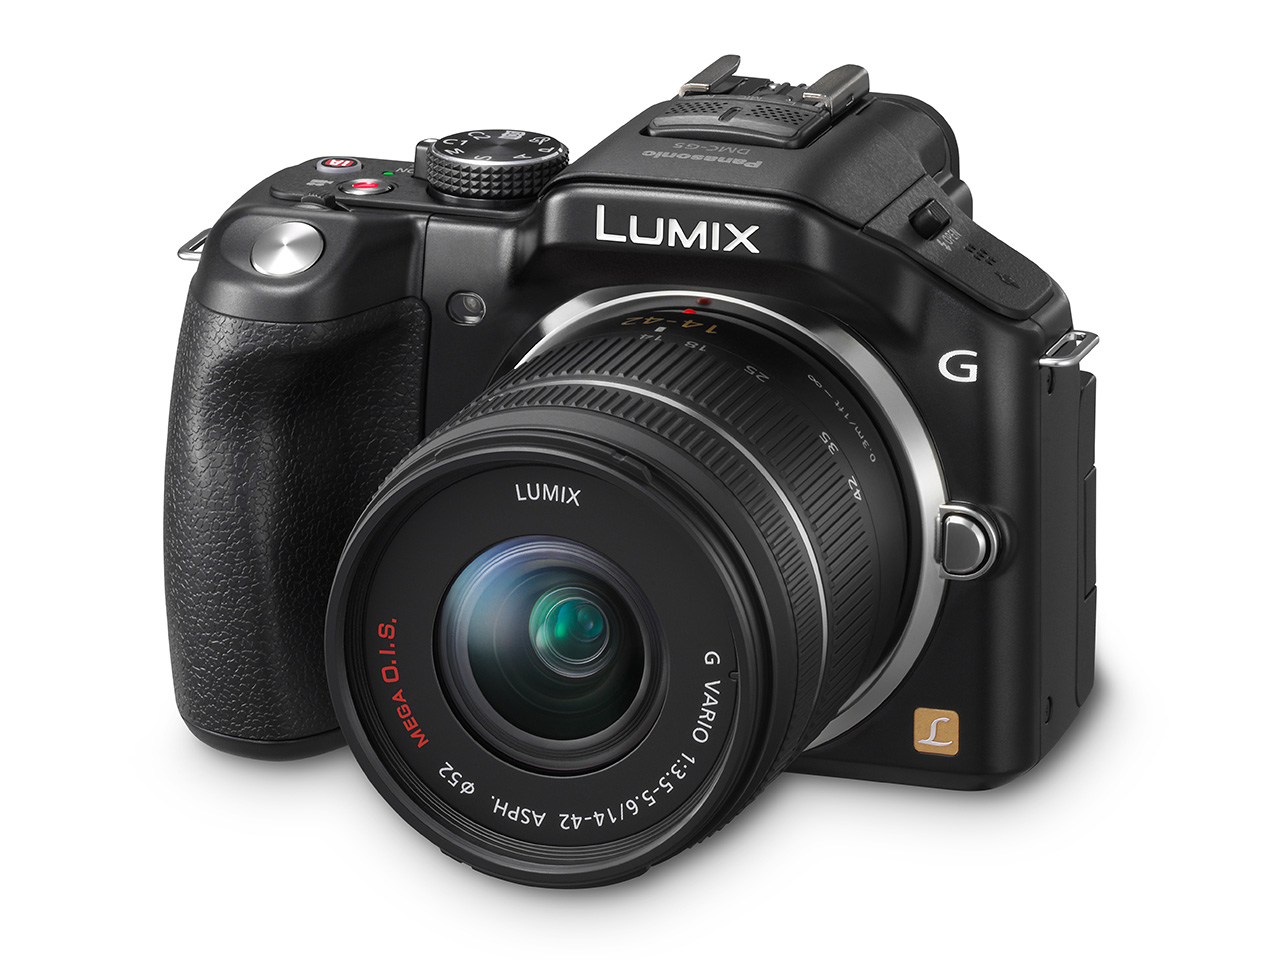 The new Panasonic G5